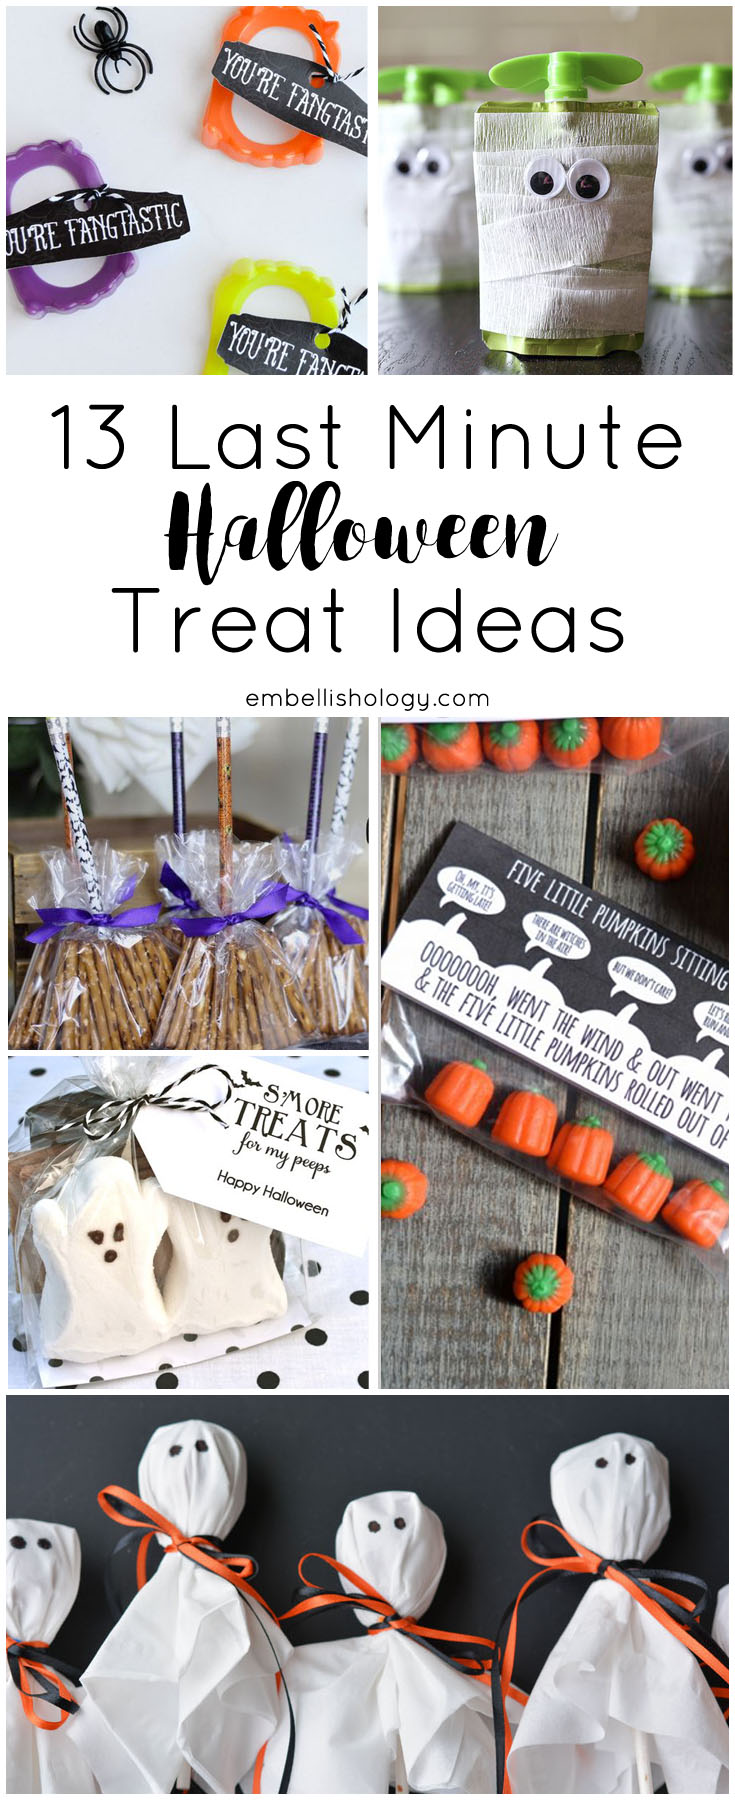 Do you wait until the last minute to whip up halloween treats? Here are 13 quick and easy Halloween Treat Ideas!